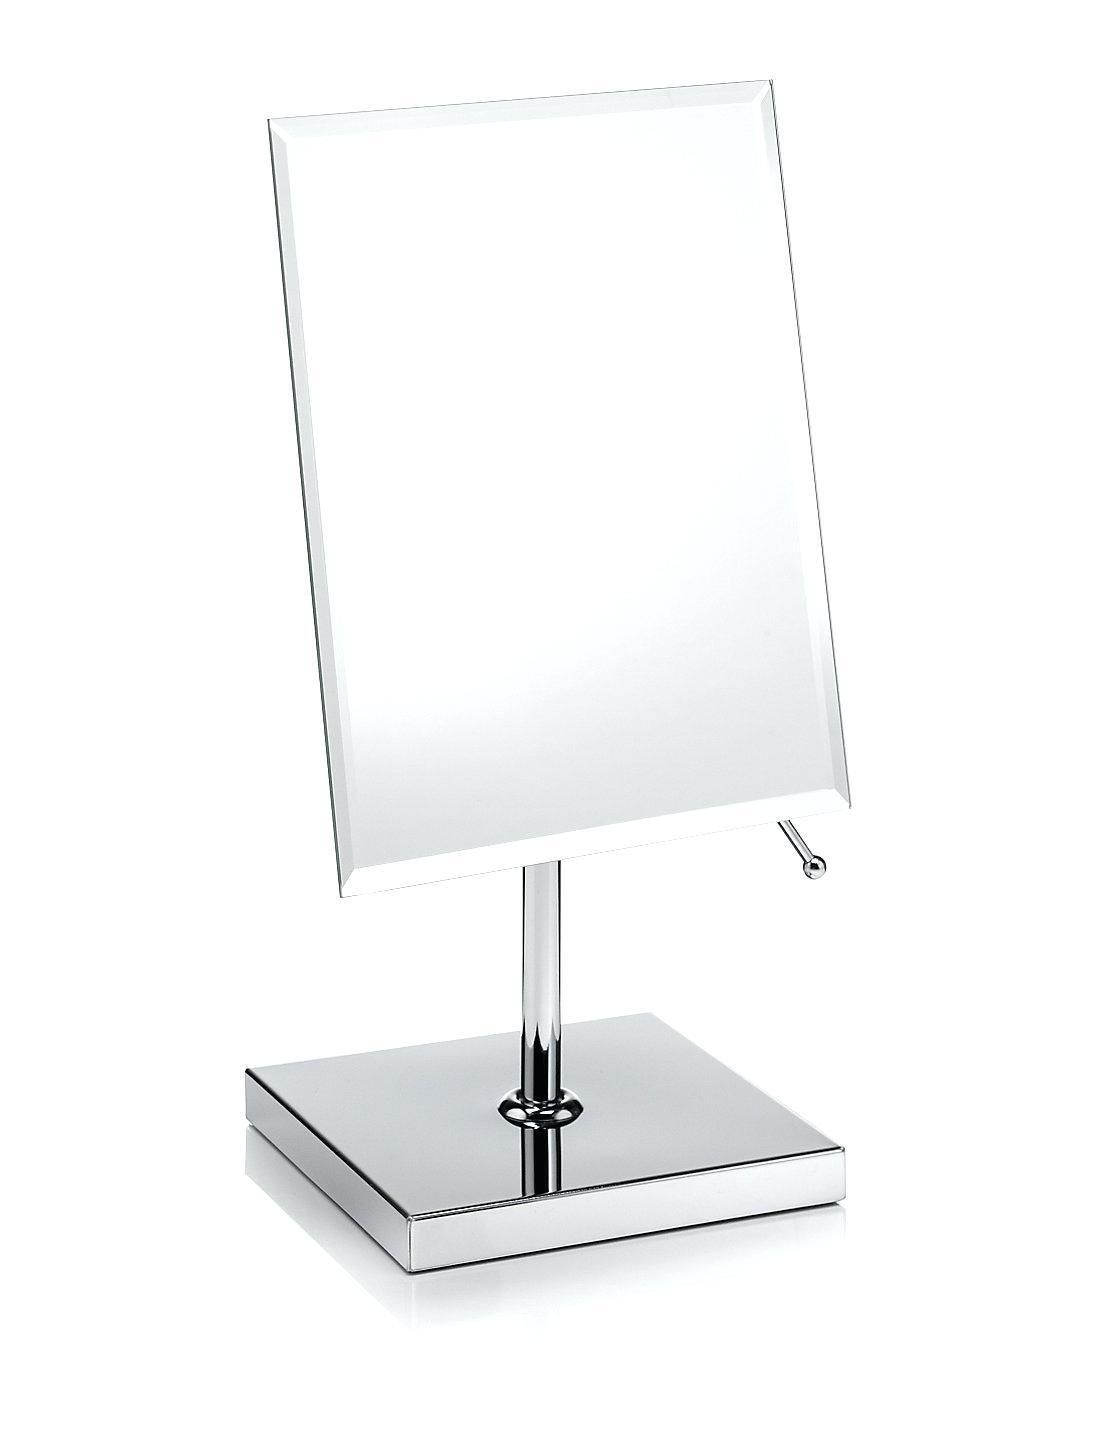 Large Full Length Mirror Floor Free Standing Brown Wood Frame Intended For Large Free Standing Mirrors (Image 15 of 20)